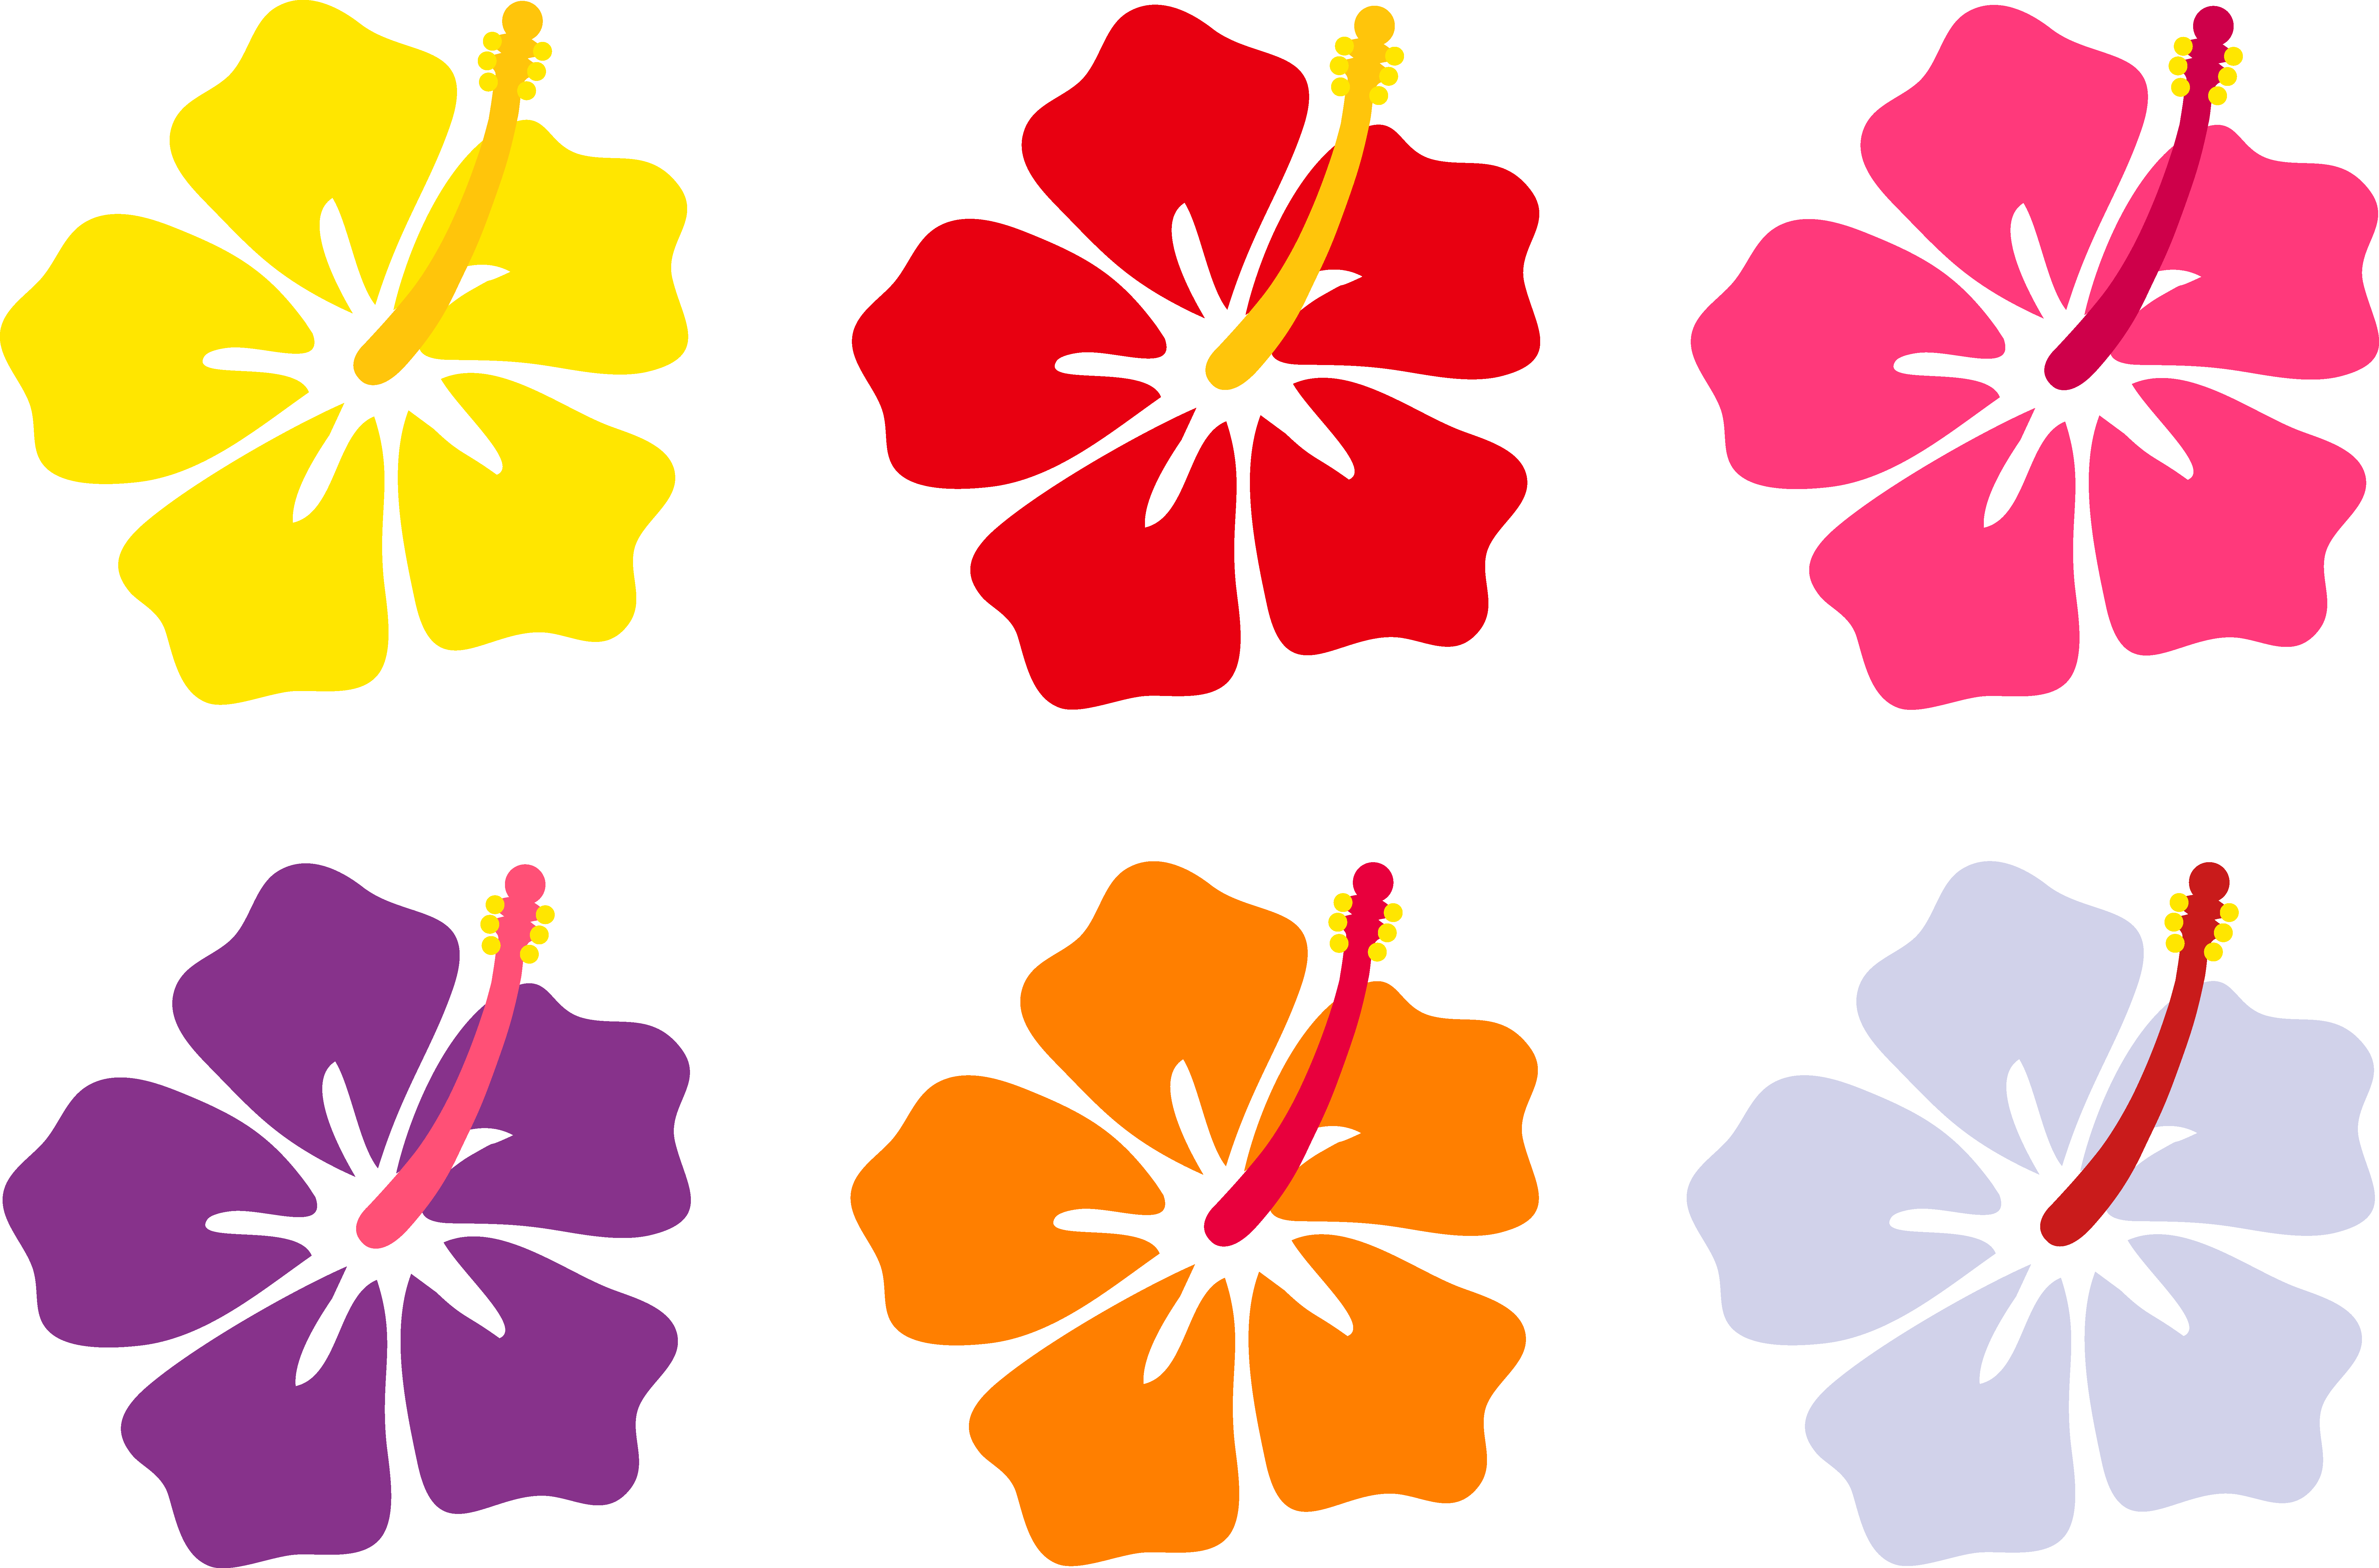 Flower colors clipart clip art black and white stock Hibiscus Flowers in Six Colors - Free Clip Art clip art black and white stock